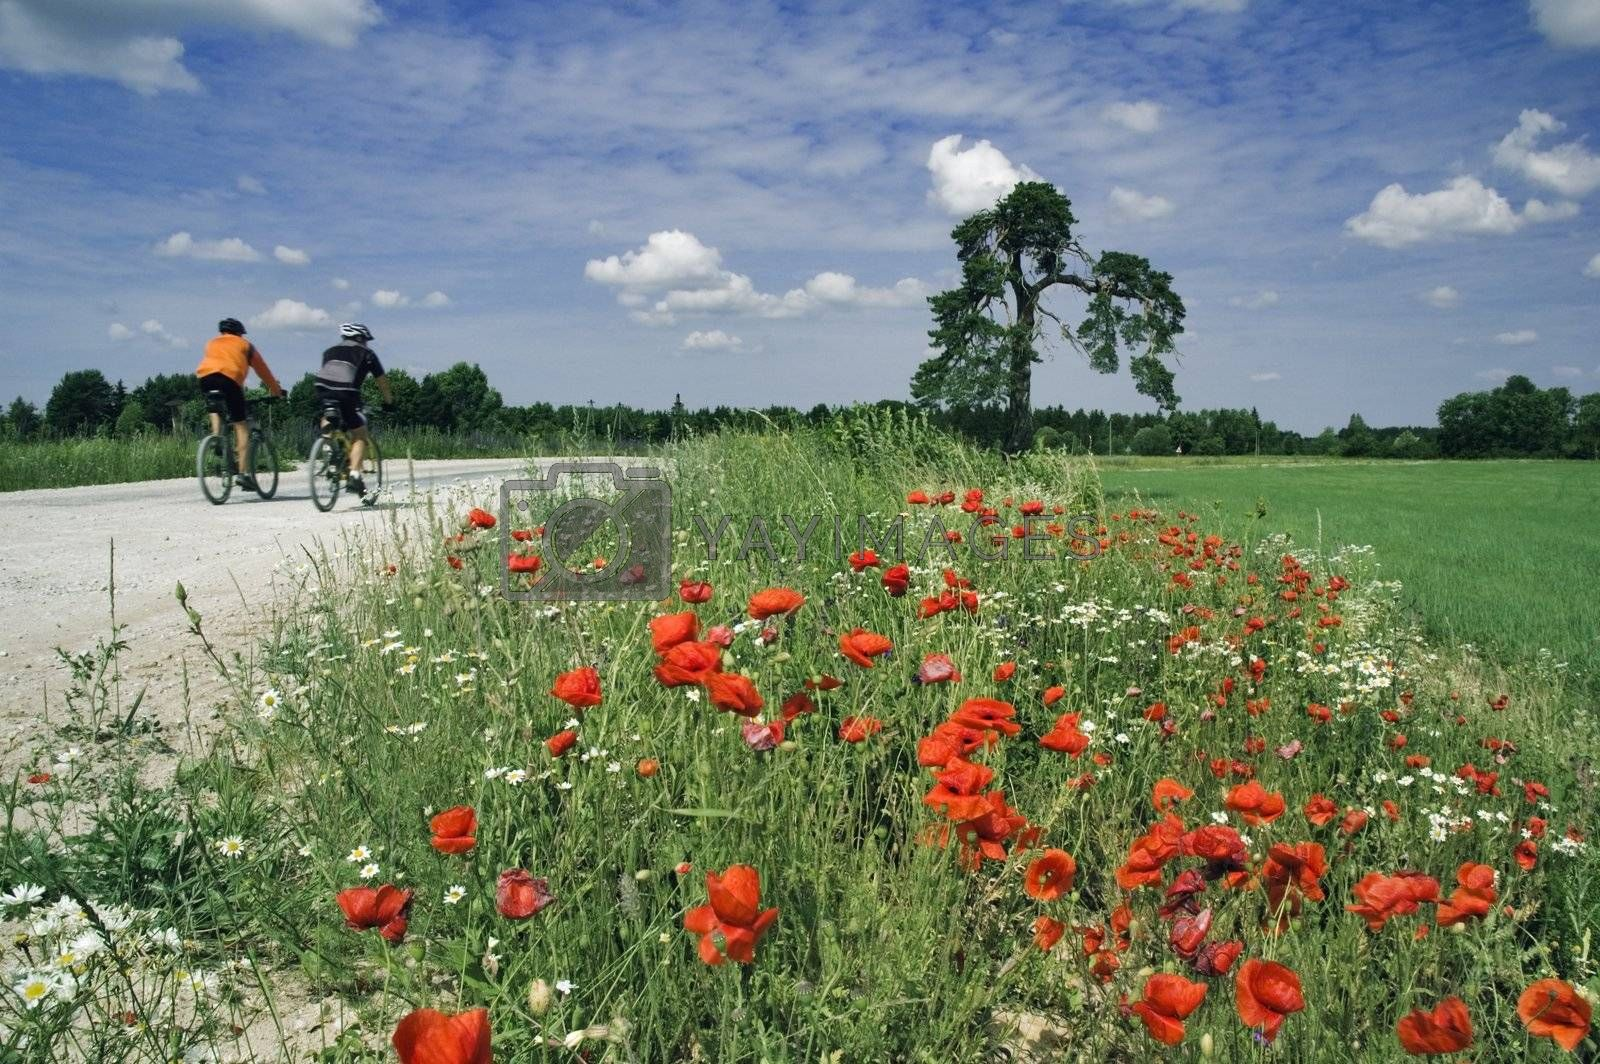 Training of bicyclists on beautiful road with a blossoming poppy. The picturesque dark blue sky with clouds.